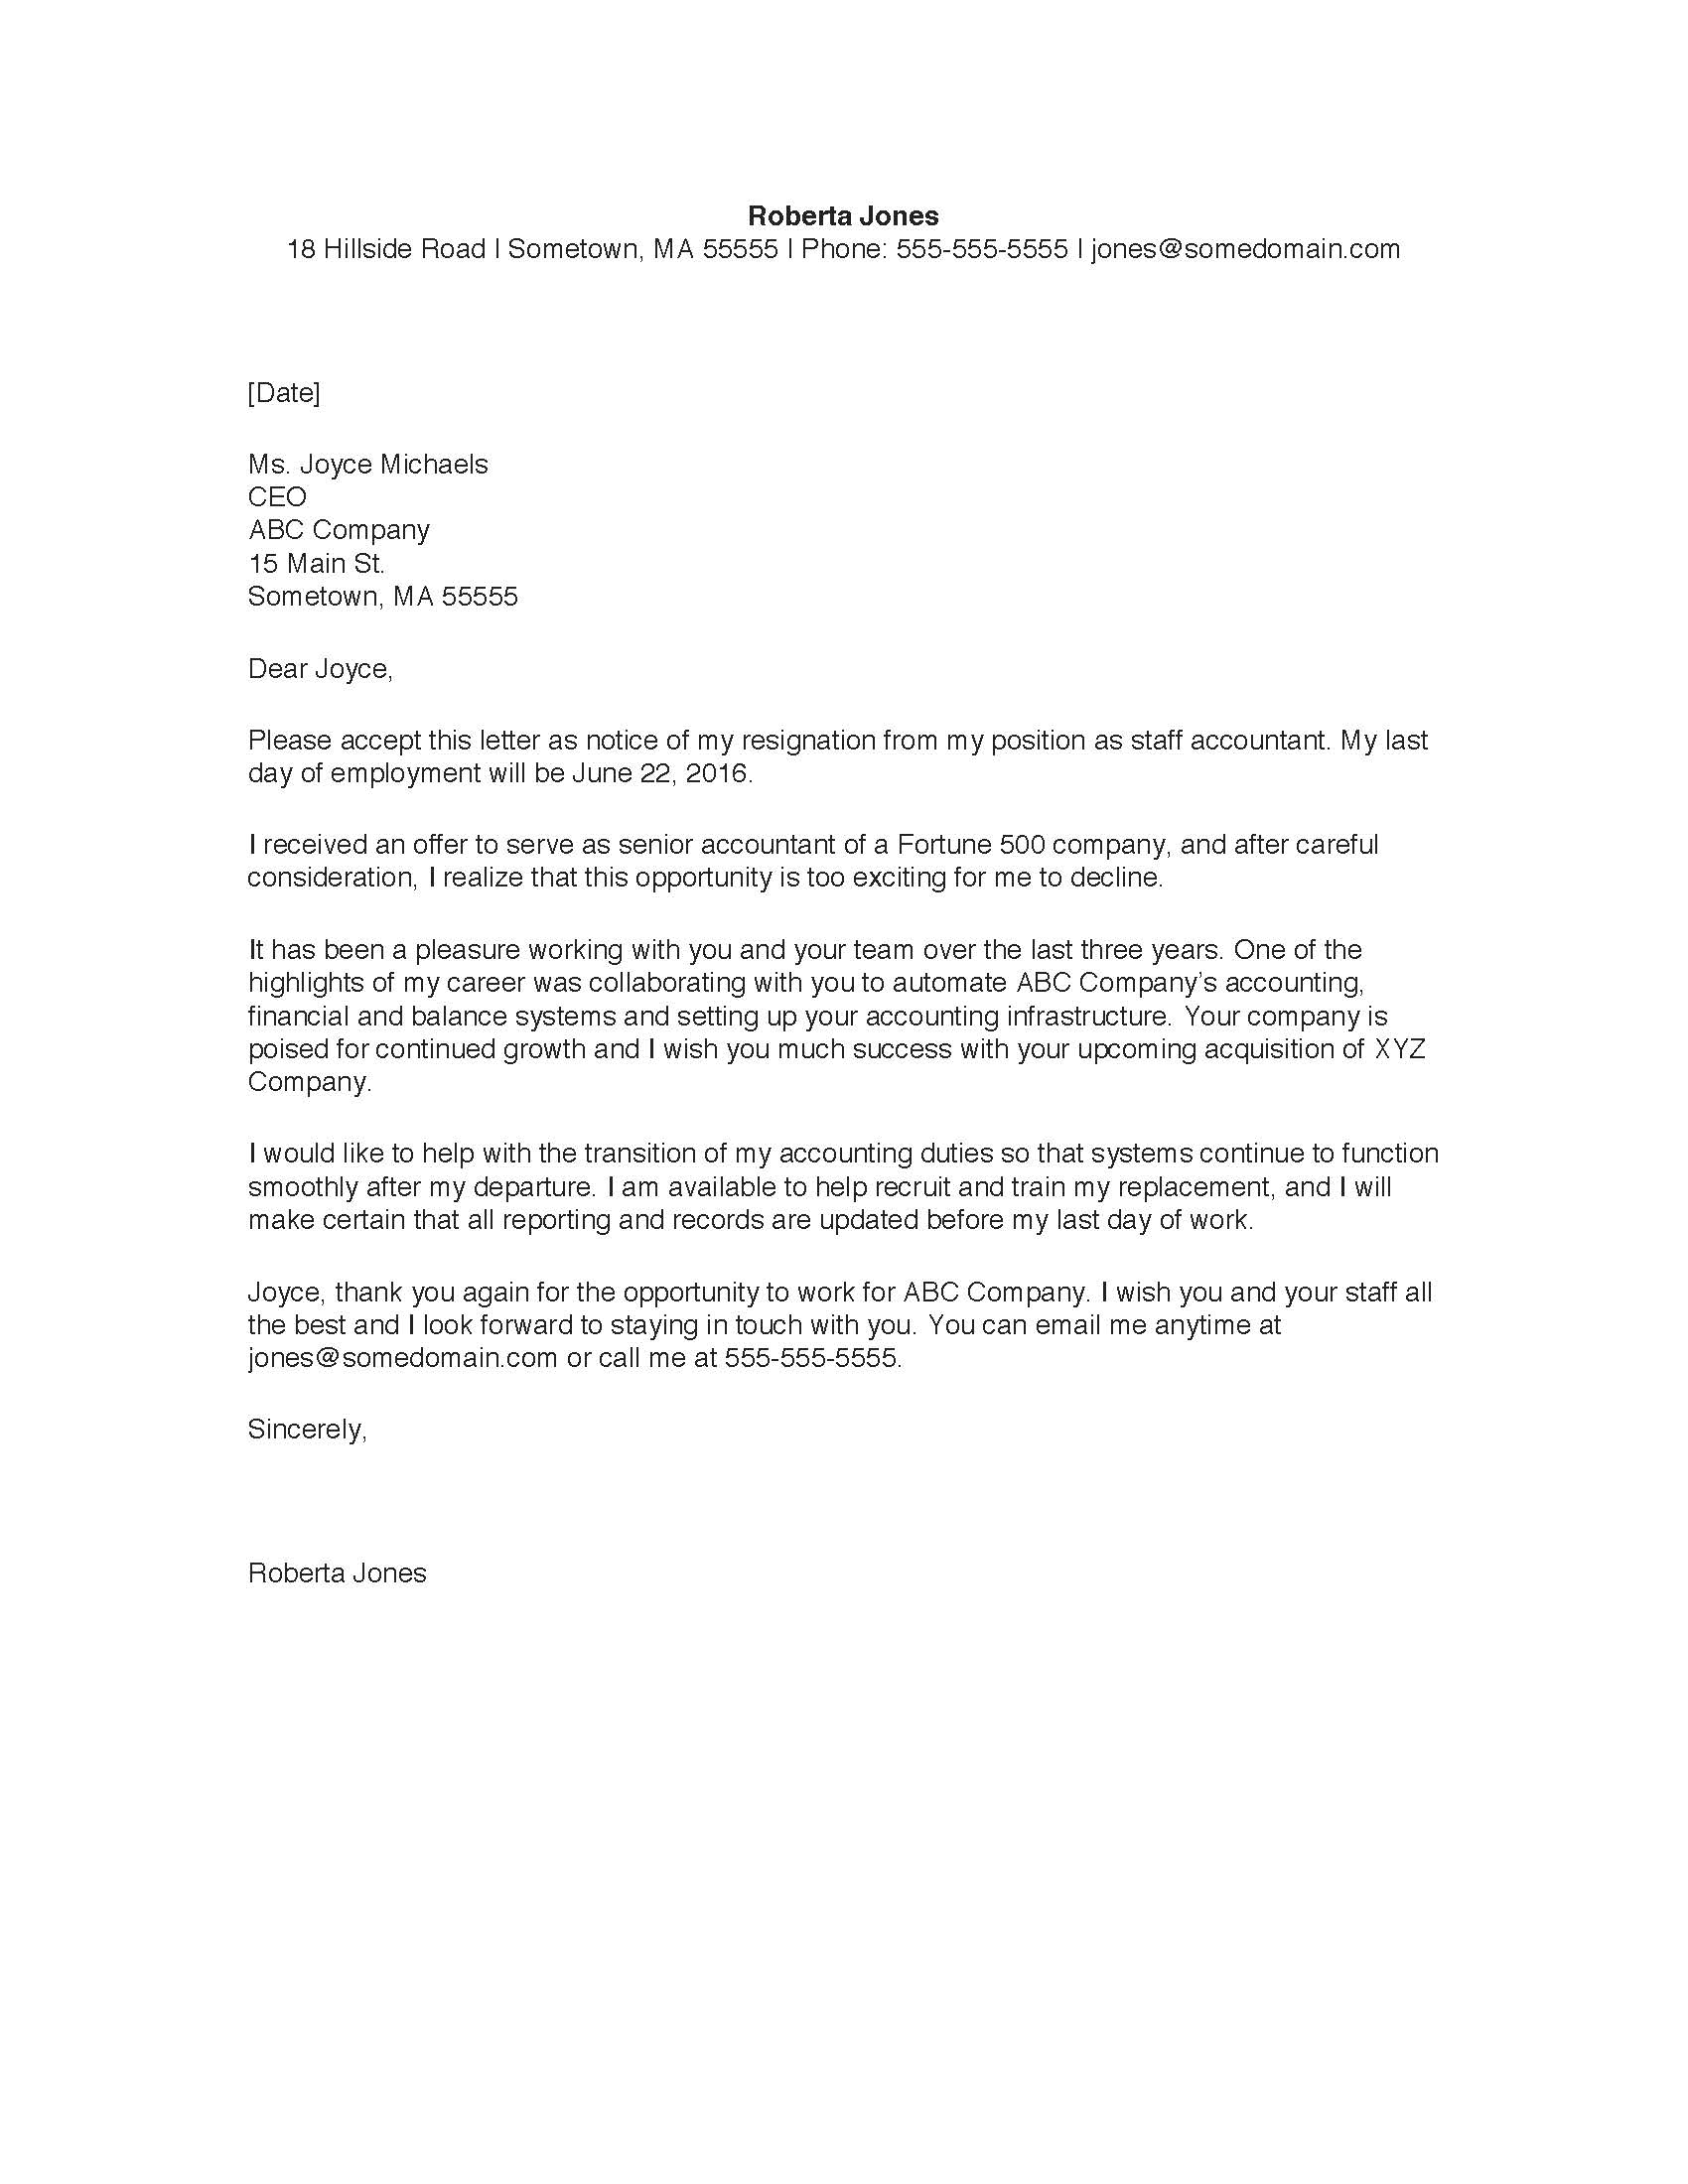 Sample resignation letter monster sample resignation letter altavistaventures Choice Image